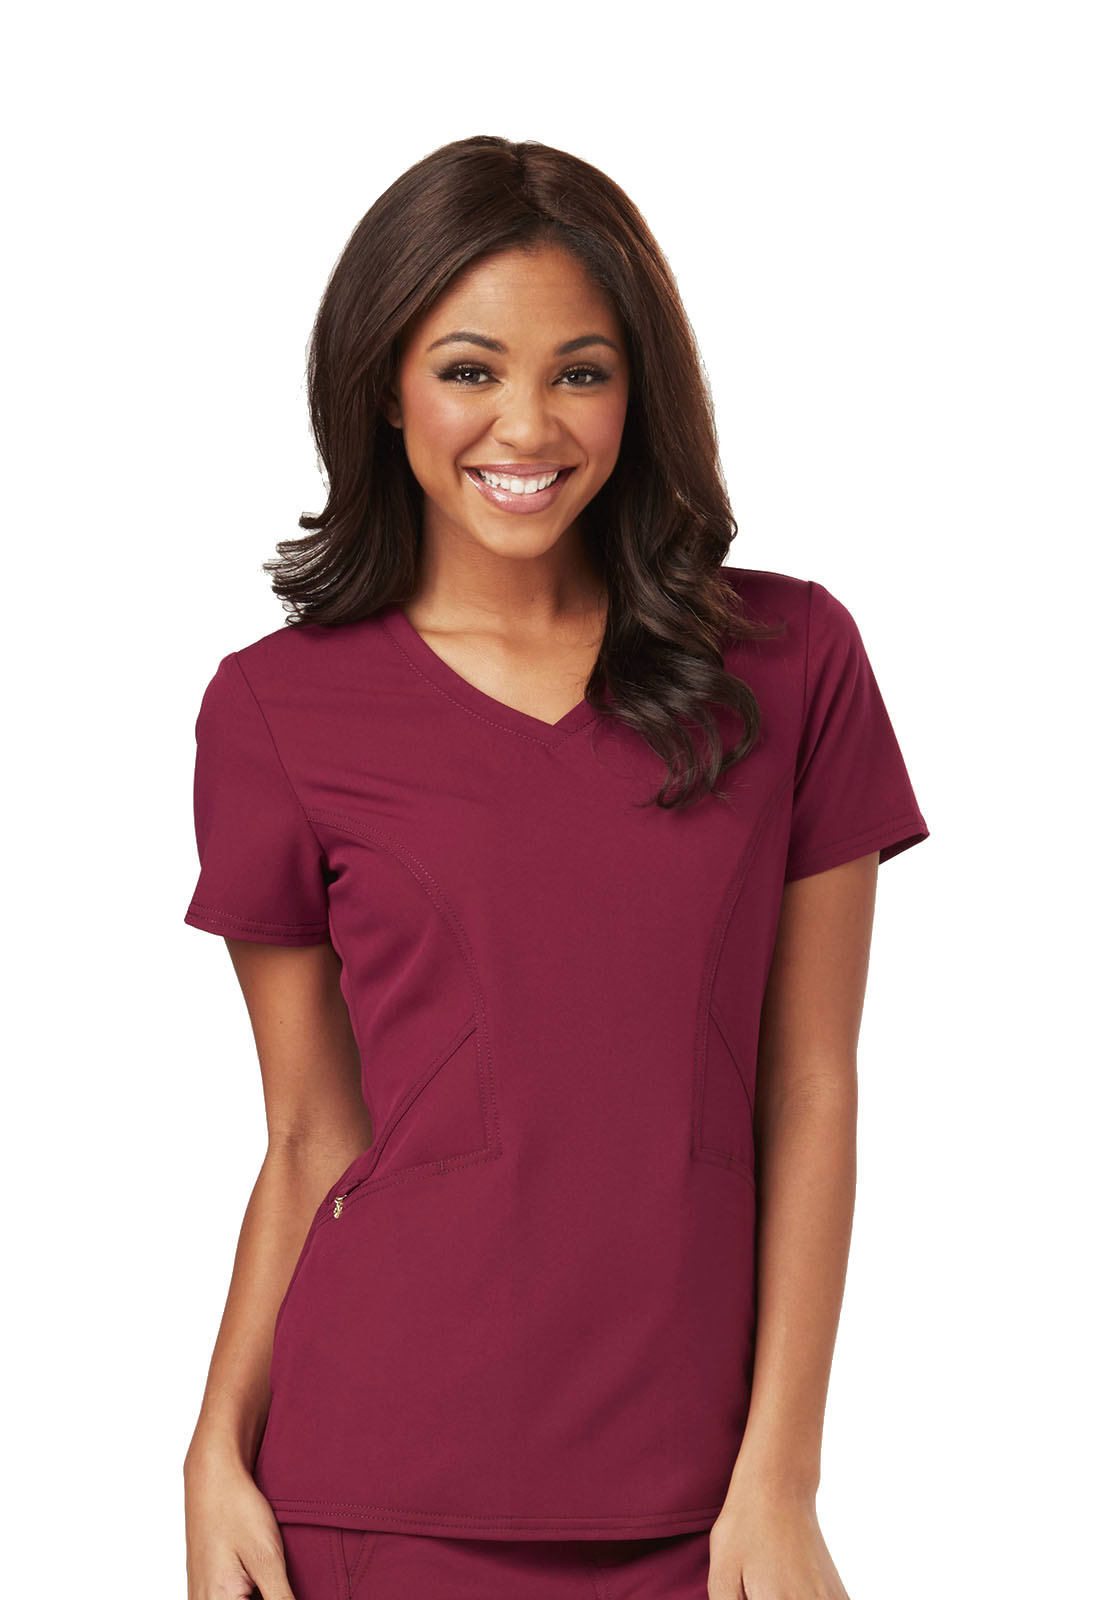 cde6d198c05 Careisma Fearless V-Neck Top CA601-WIN from Scrubs Stop